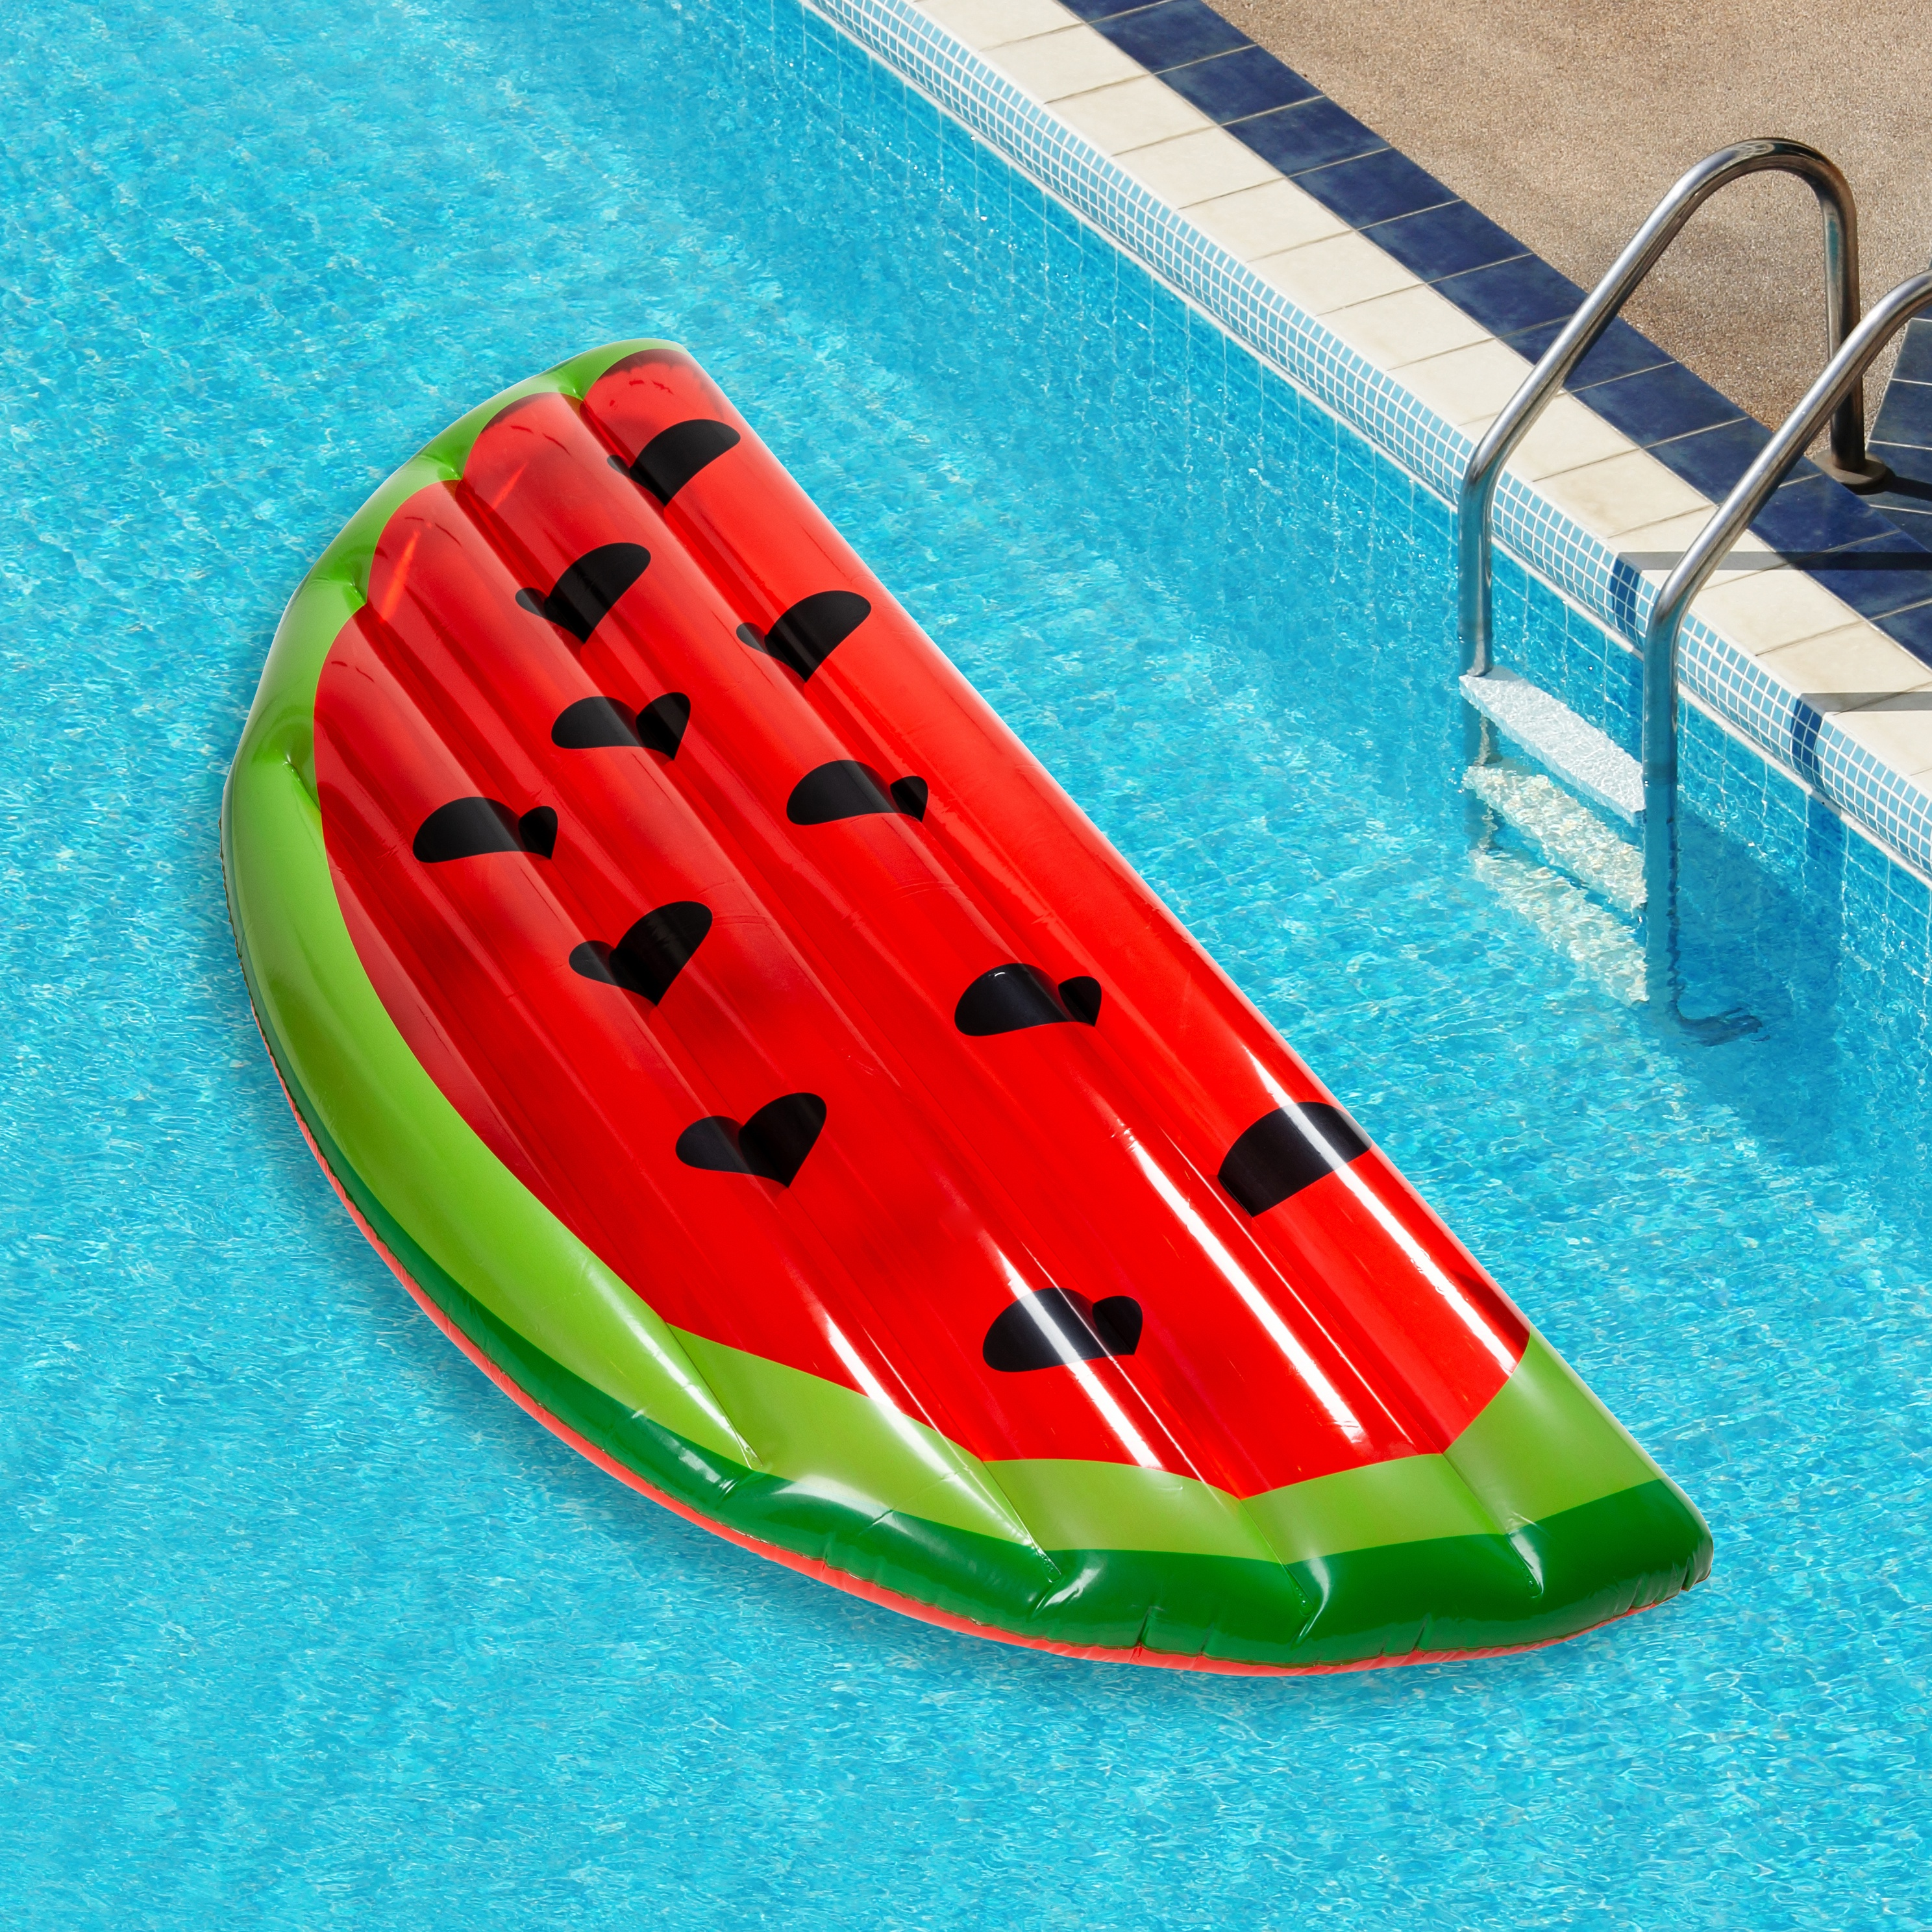 watermelon pool floatie in a swimming pool canada day